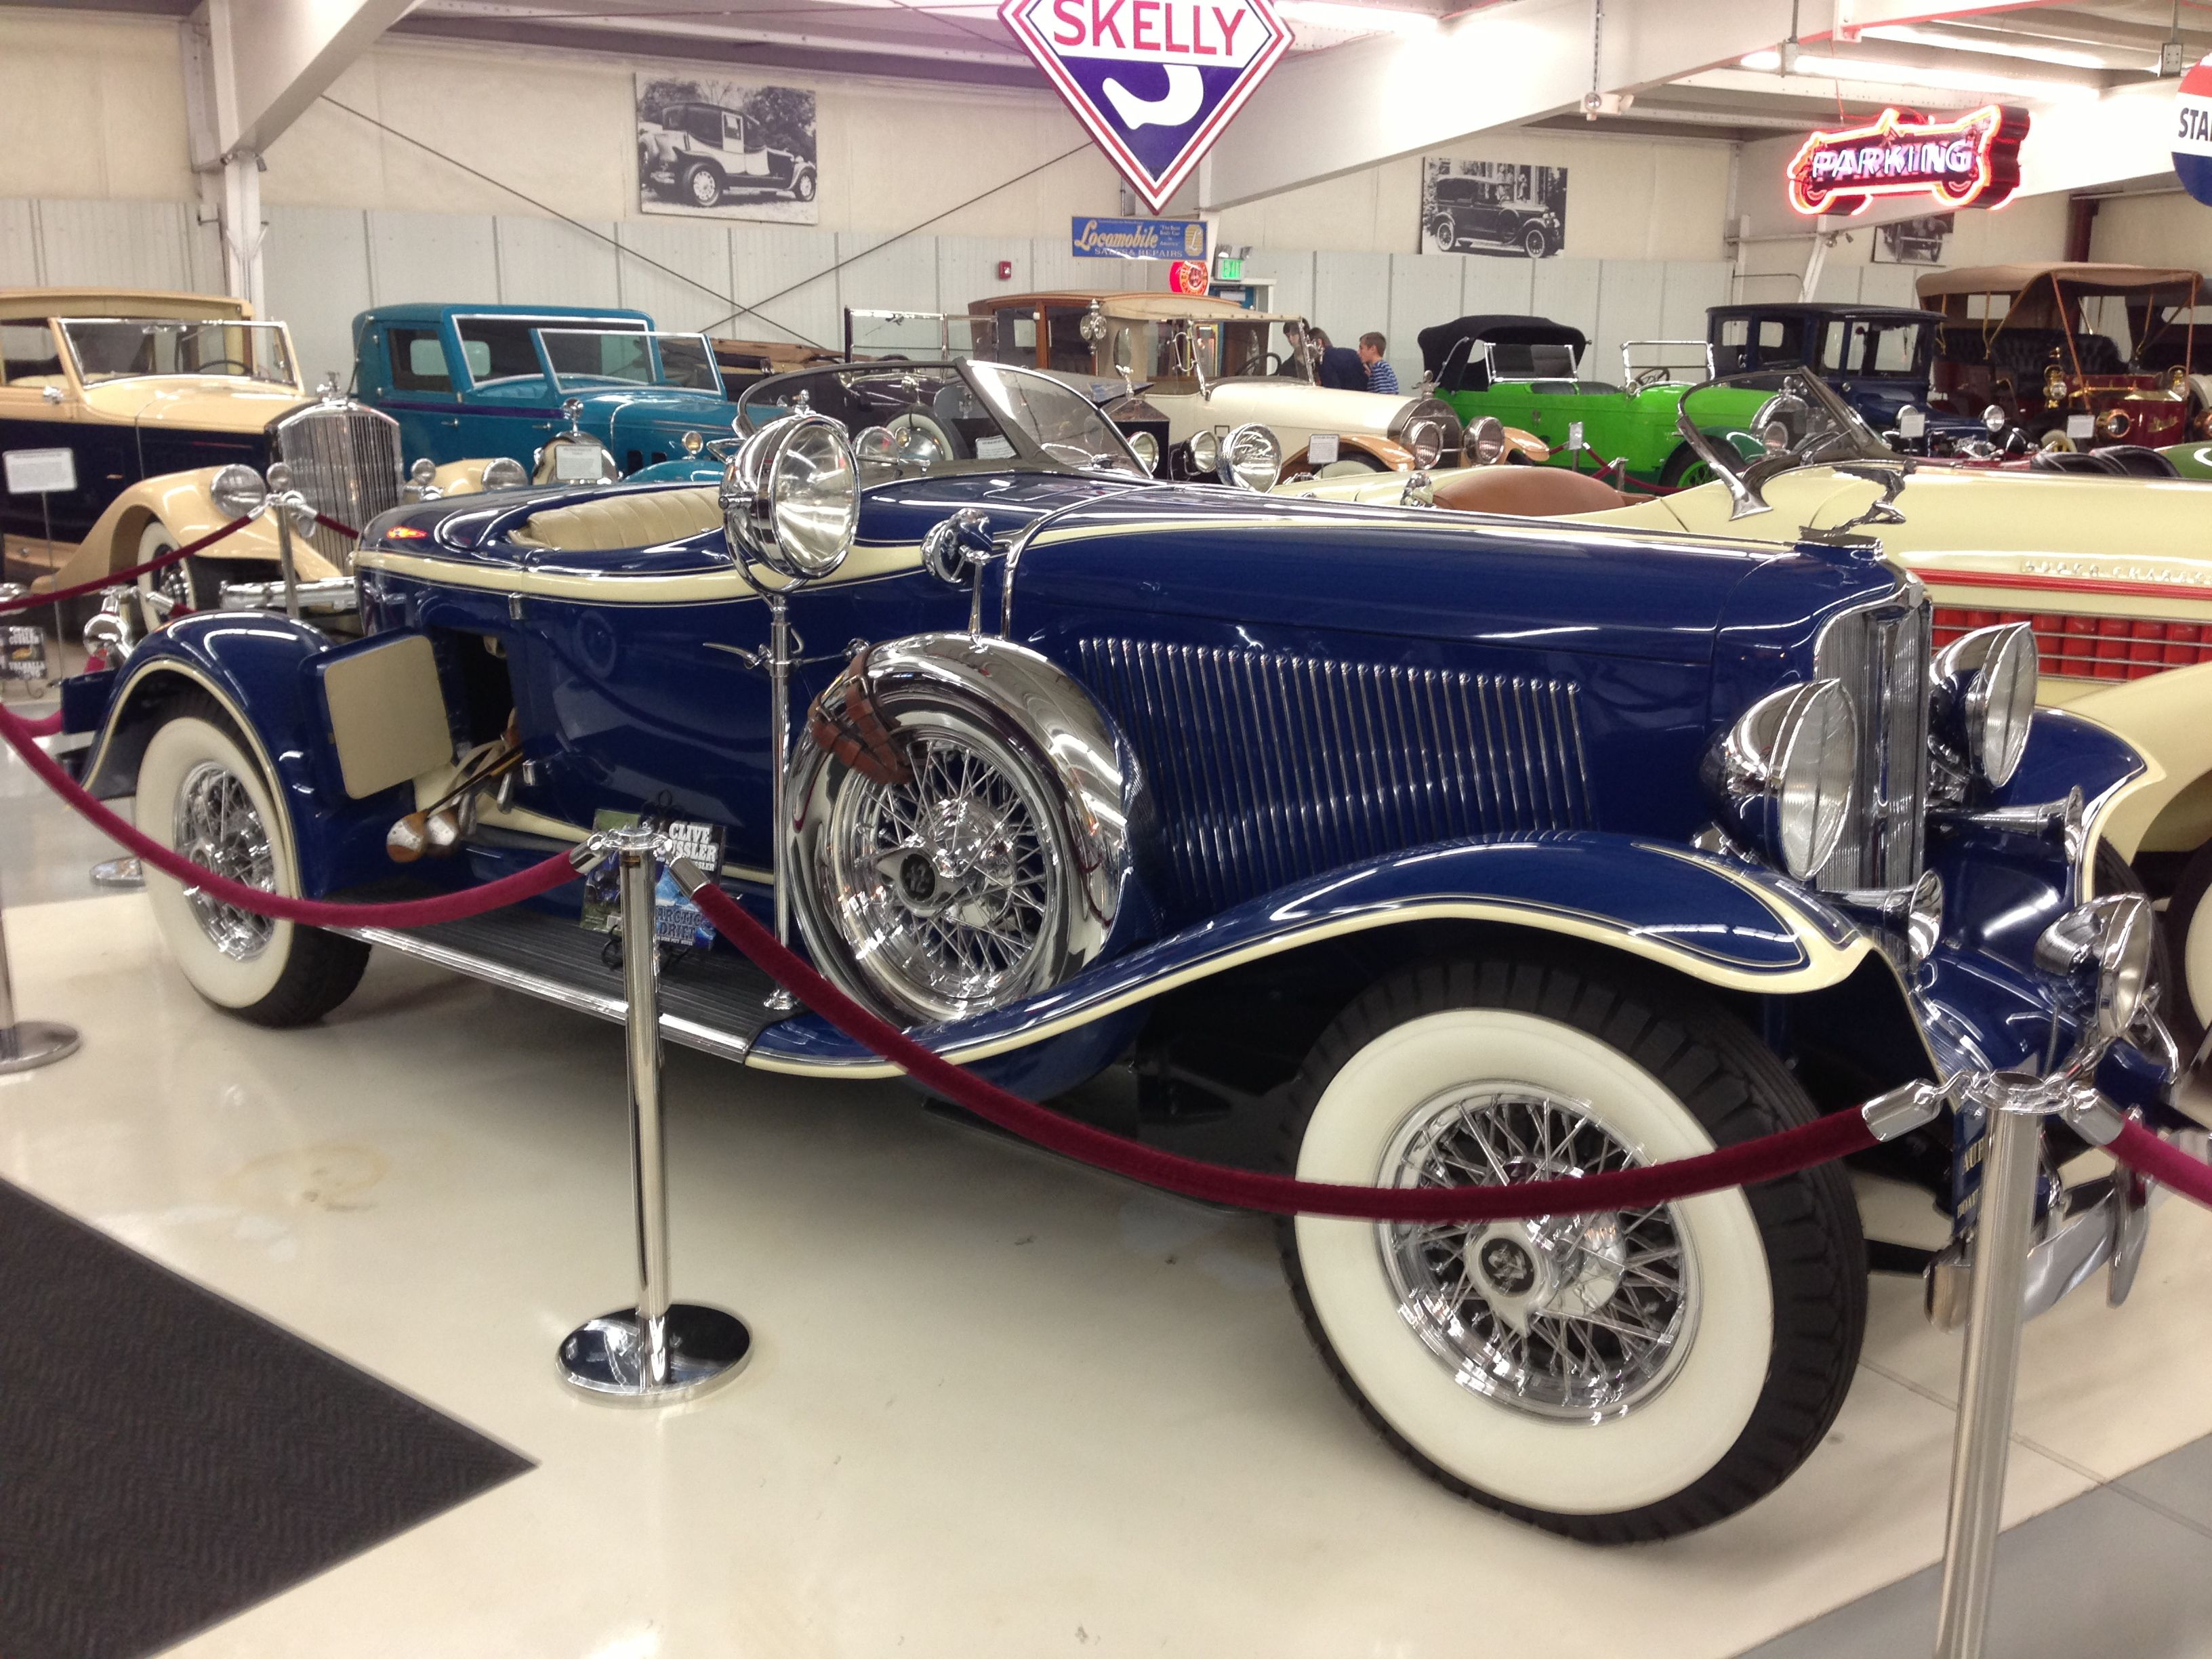 Clive Cussler Museum in Colorado | Cars & Motorcycles We Like ...